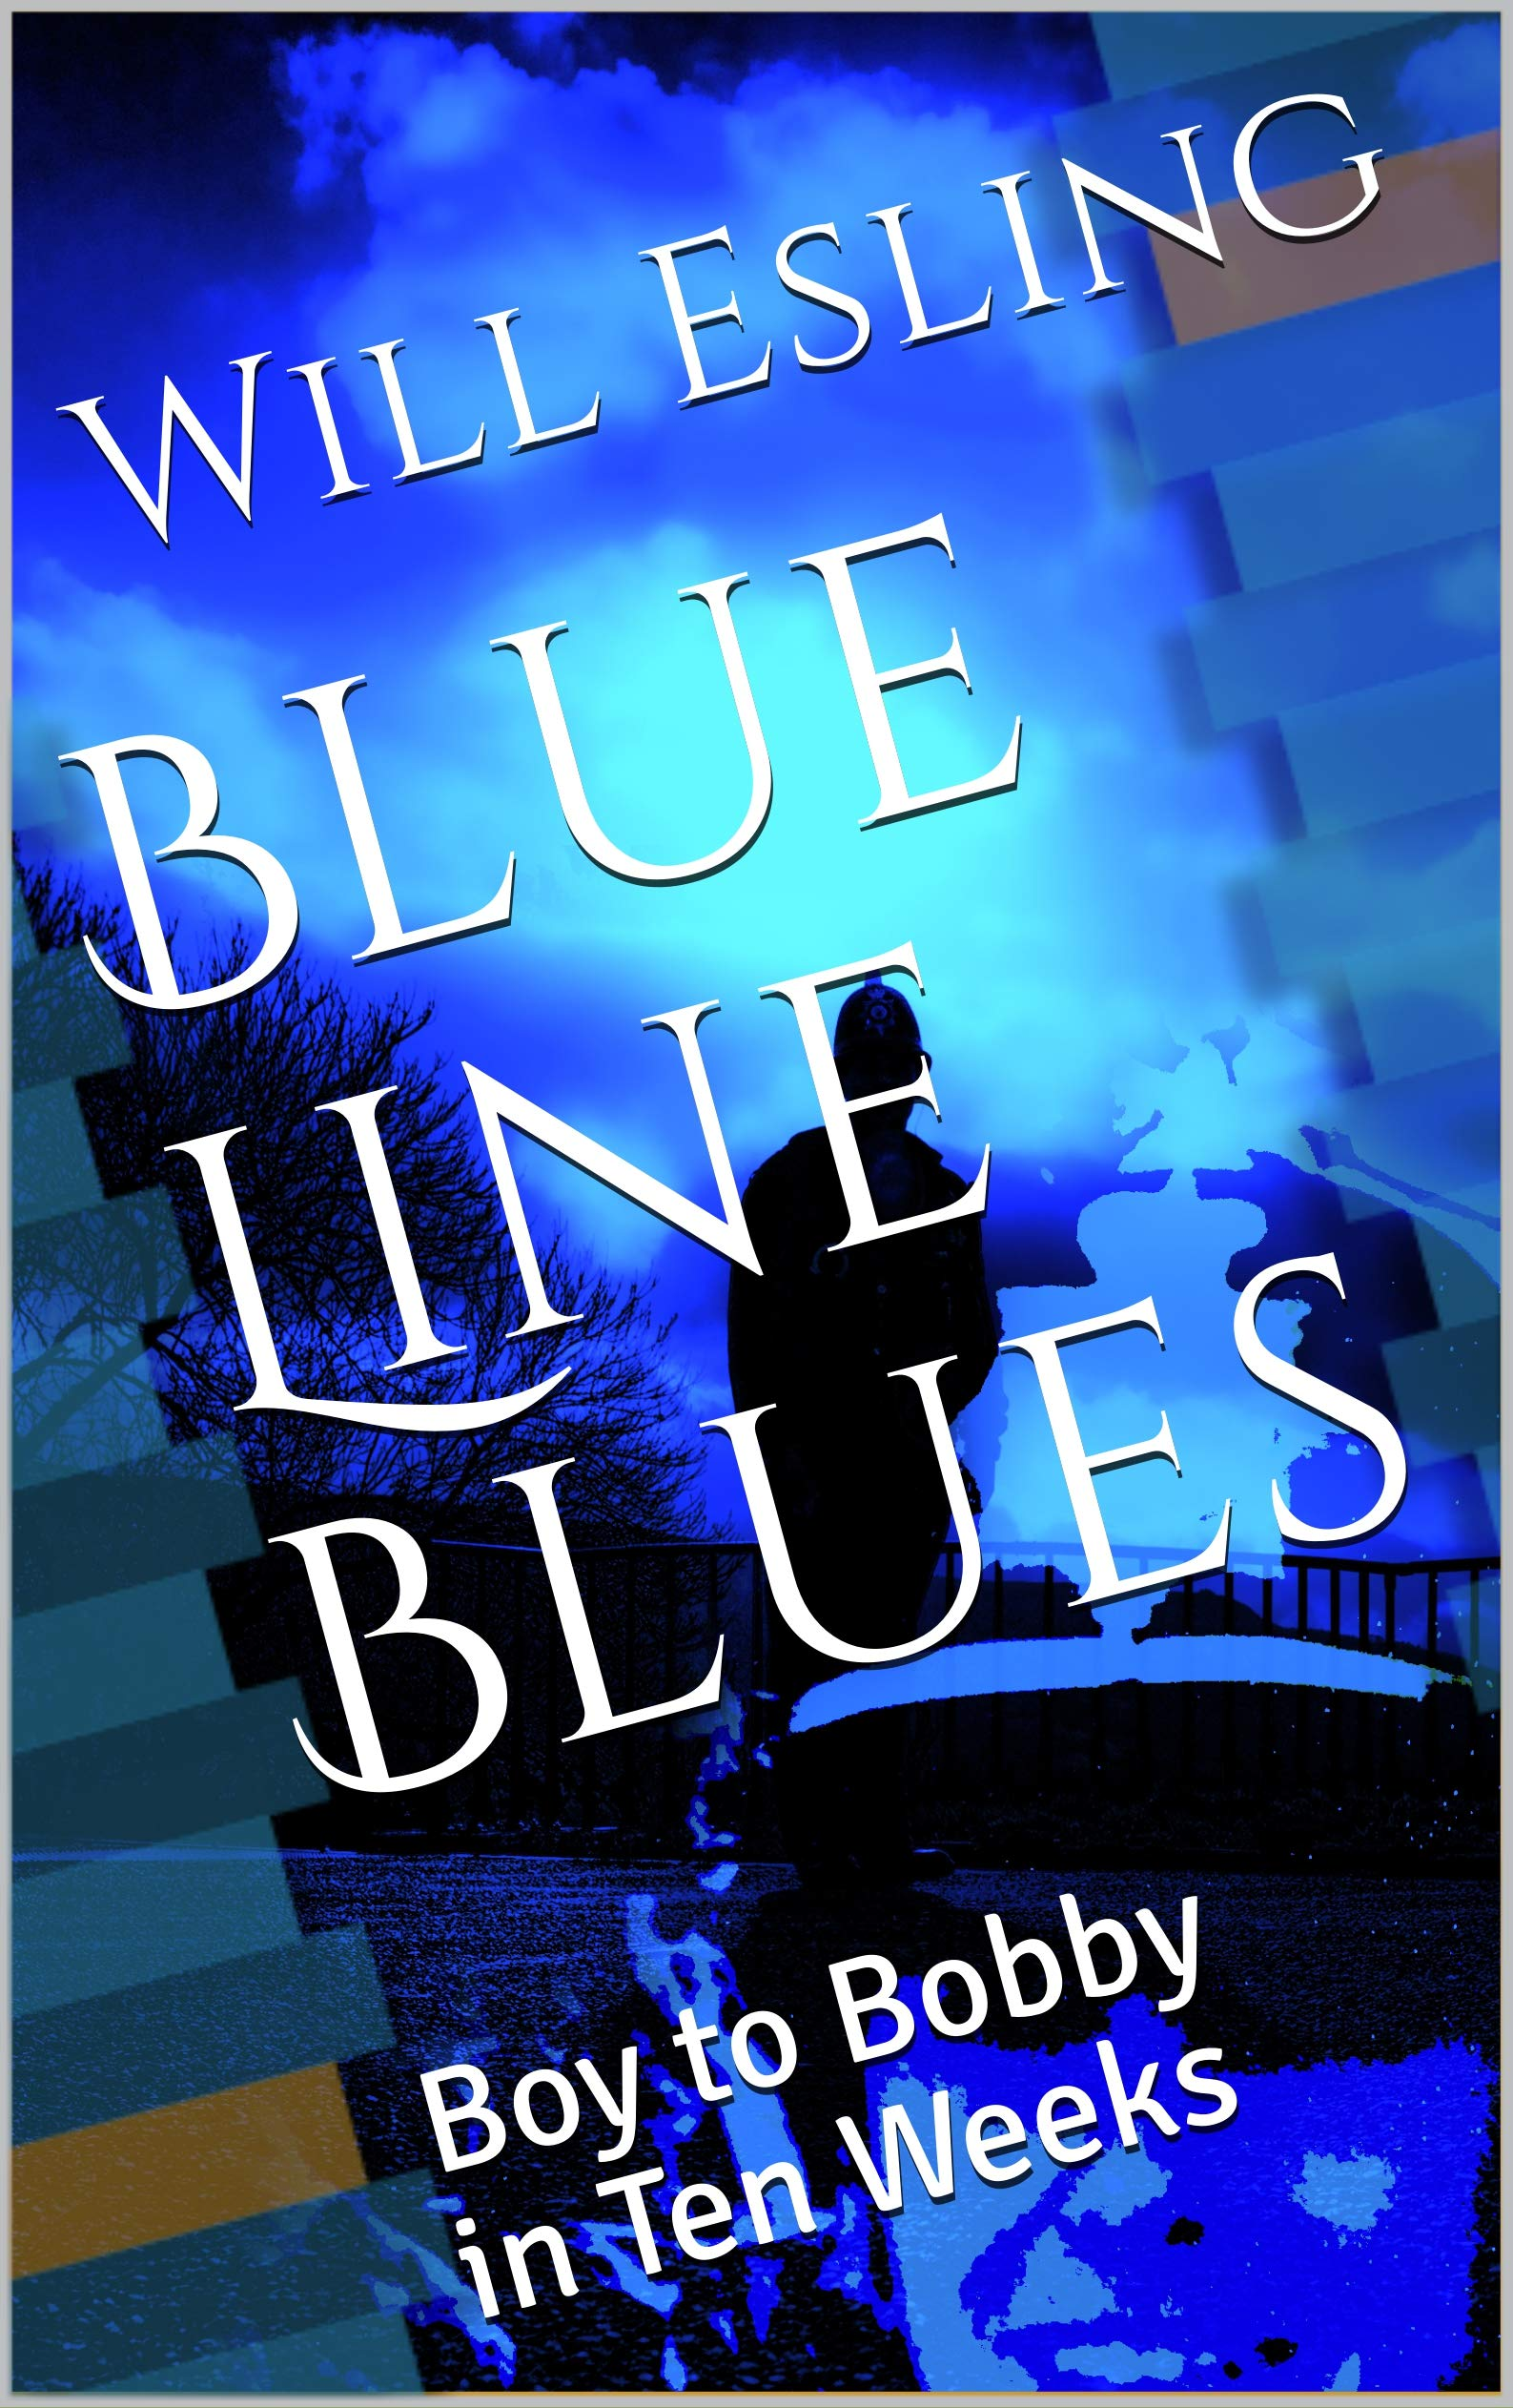 Blue Line Blues: A 1970s humorous police tale of romance, corruption, bullying and coming of age. A working class lad, straight from school, plunged into a world of intrigue - the police brotherhood.